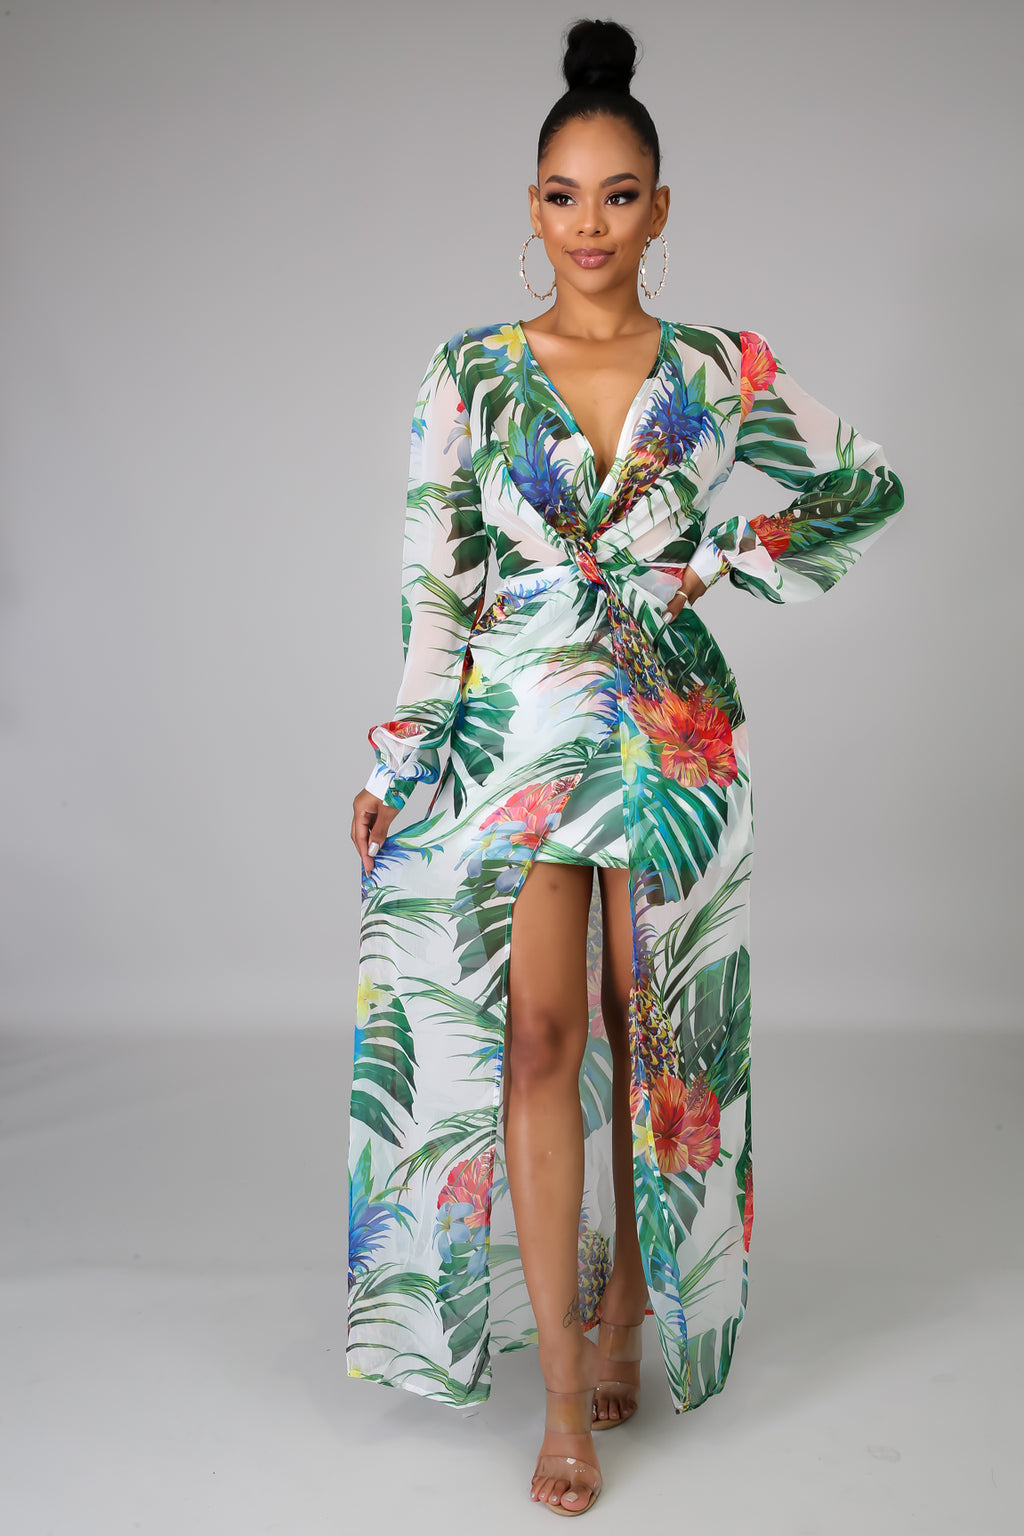 Copy of Vivid Floral Maxi Dress-2/16 | GitiOnline